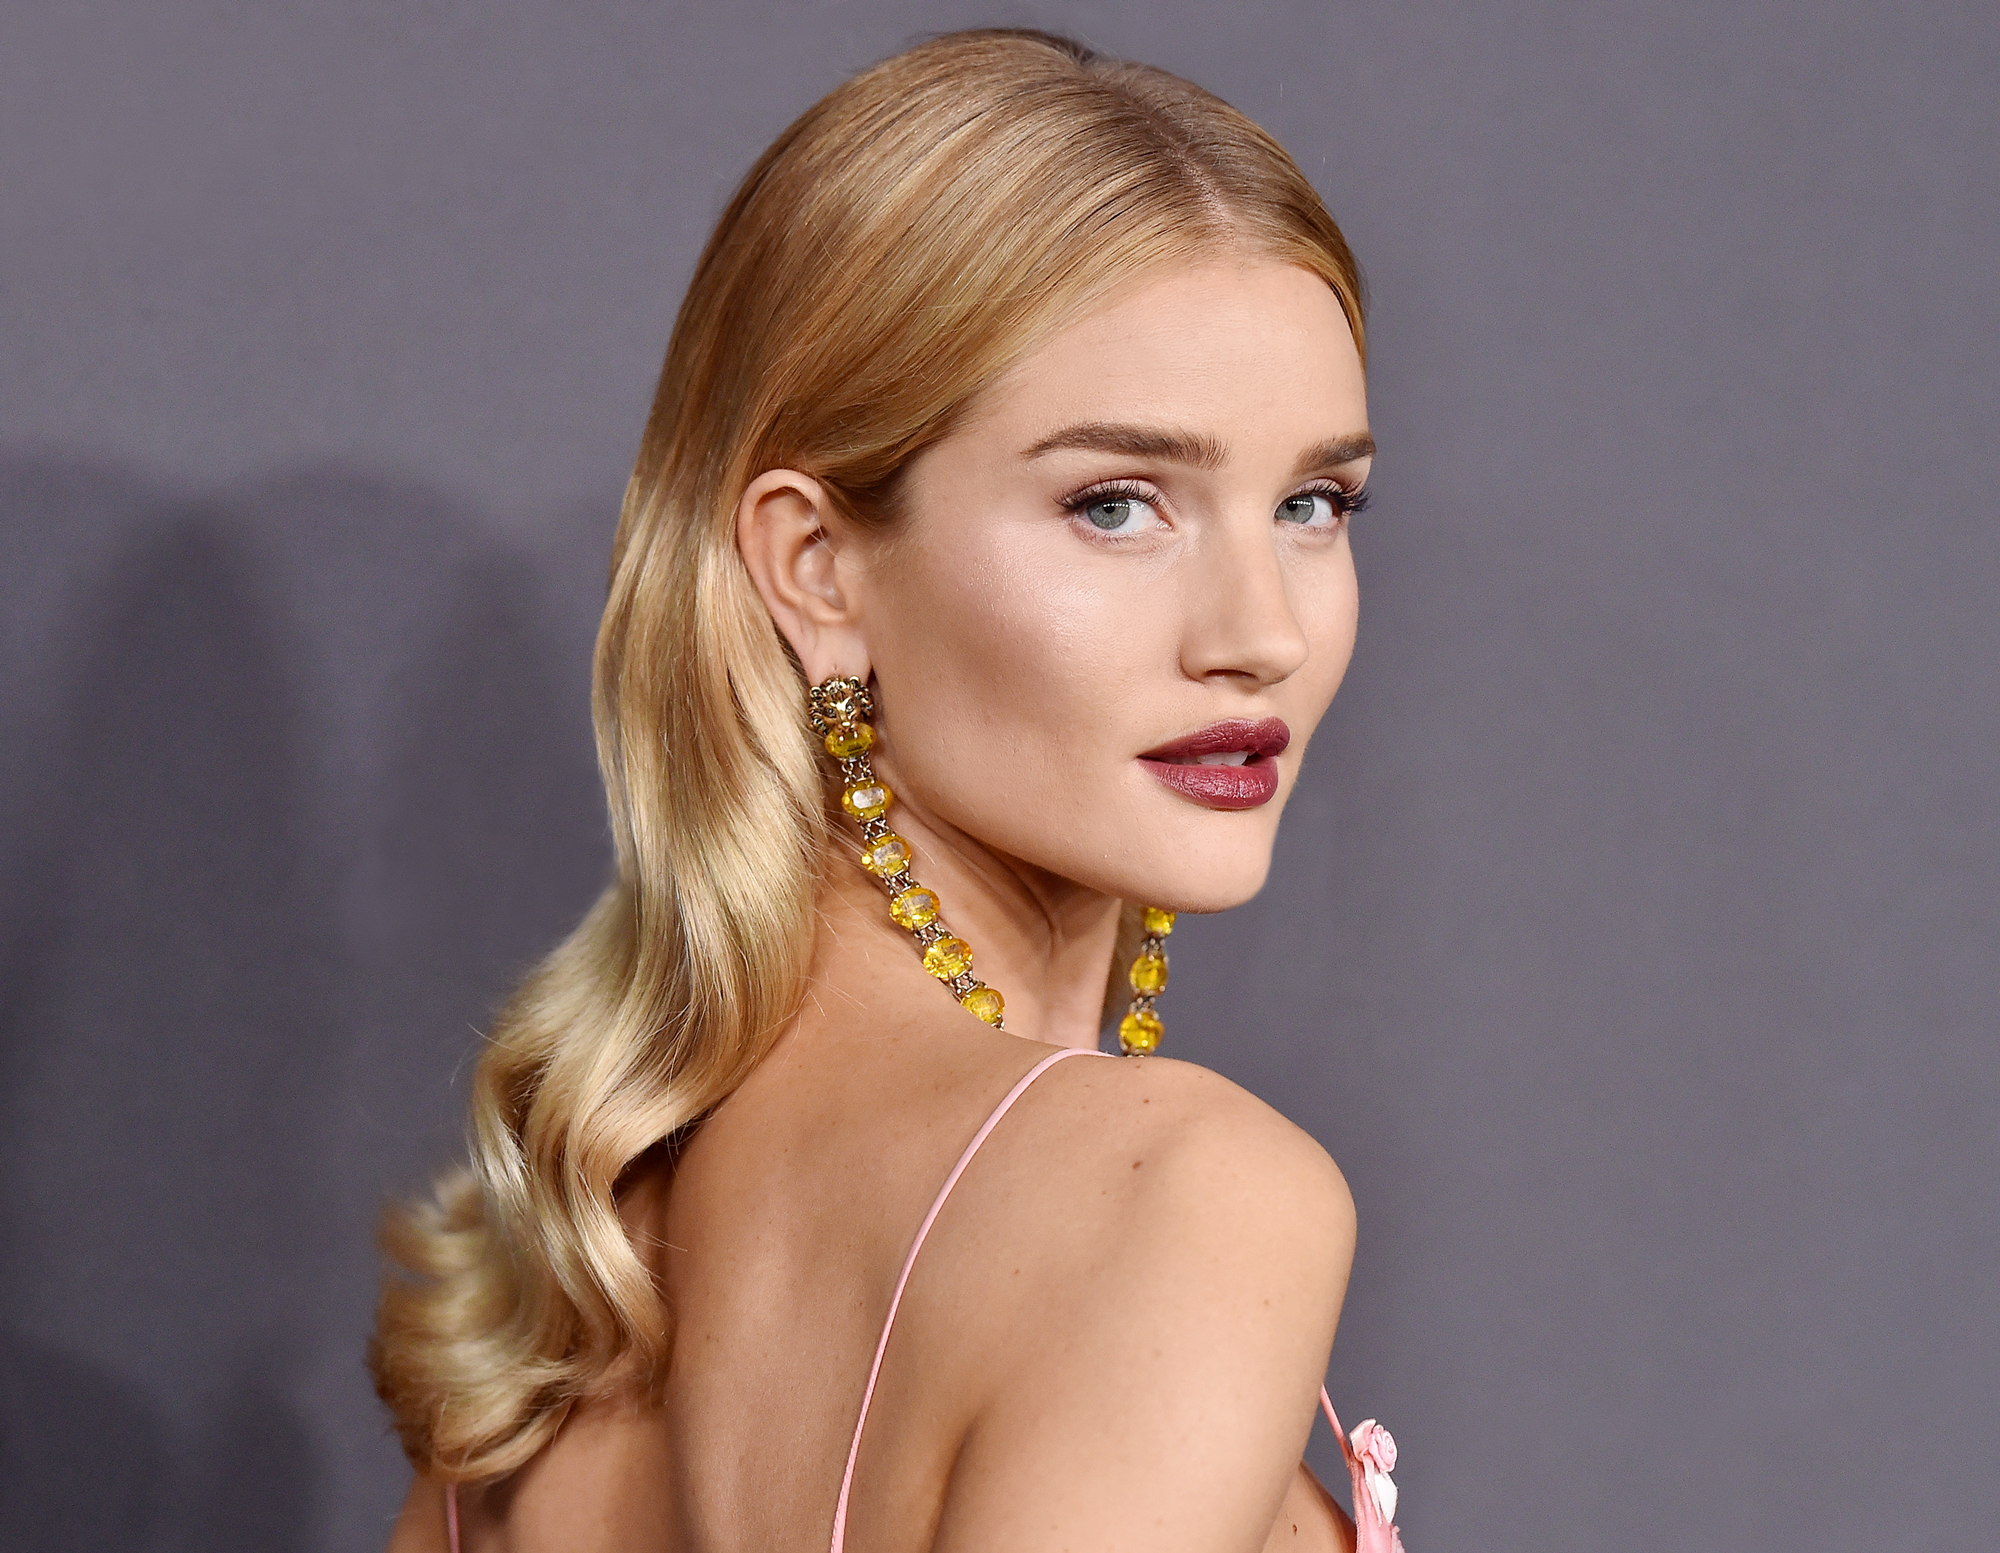 Rosie Huntington-Whiteley Has the Secret for Getting Shiny Hair Fast